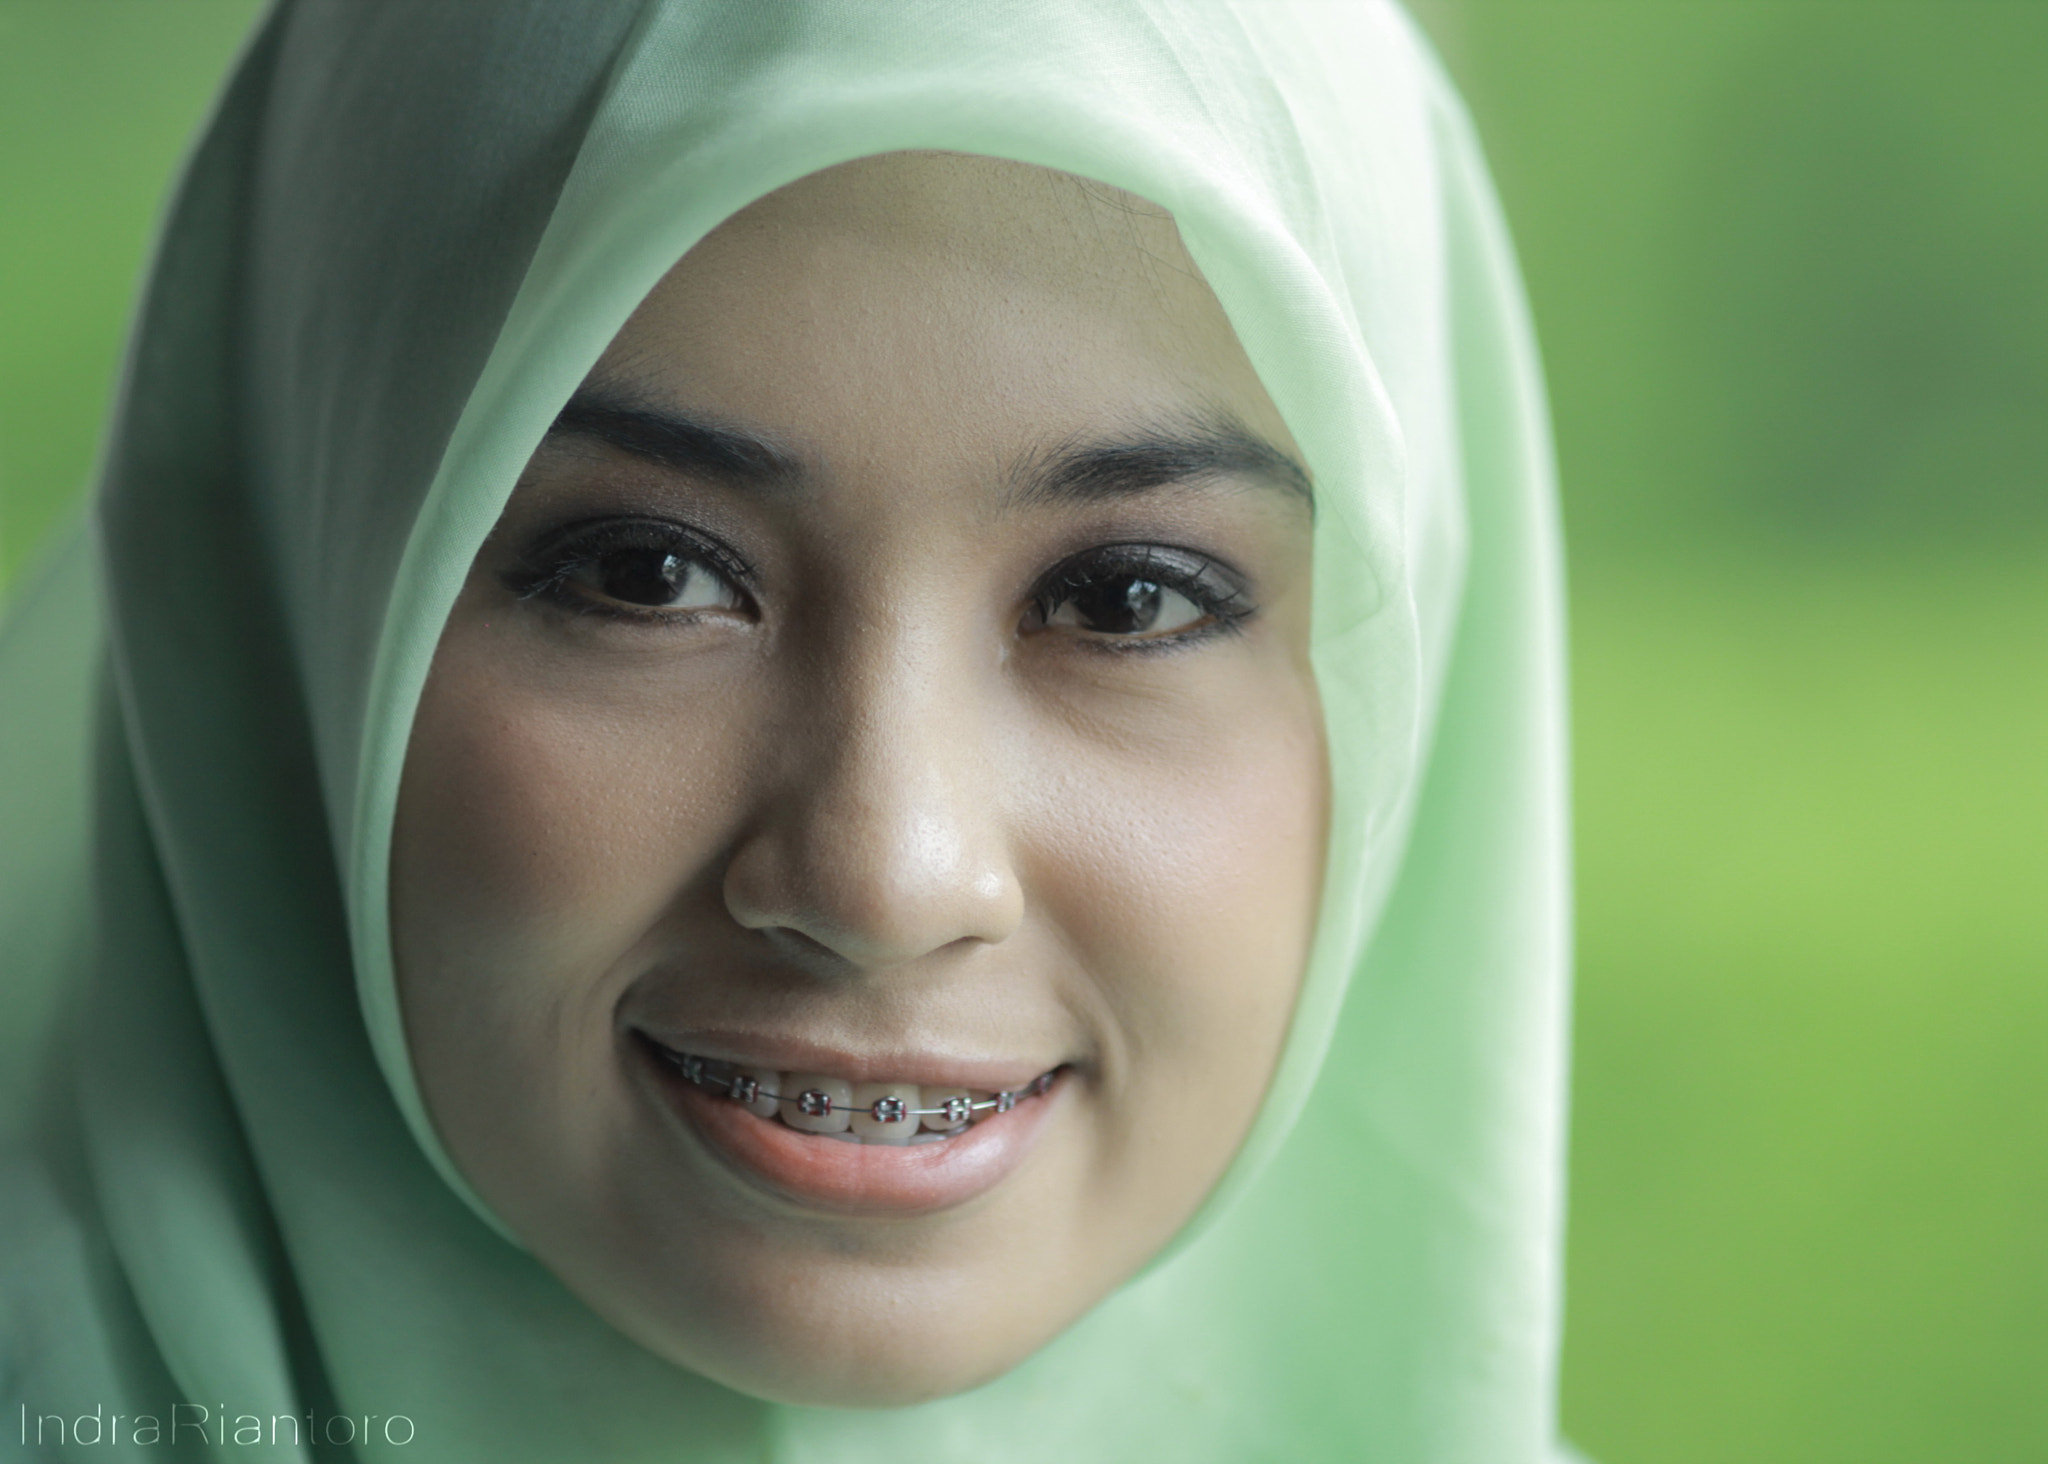 Photograph beauty of hijab by Indra Riantoro on 500px